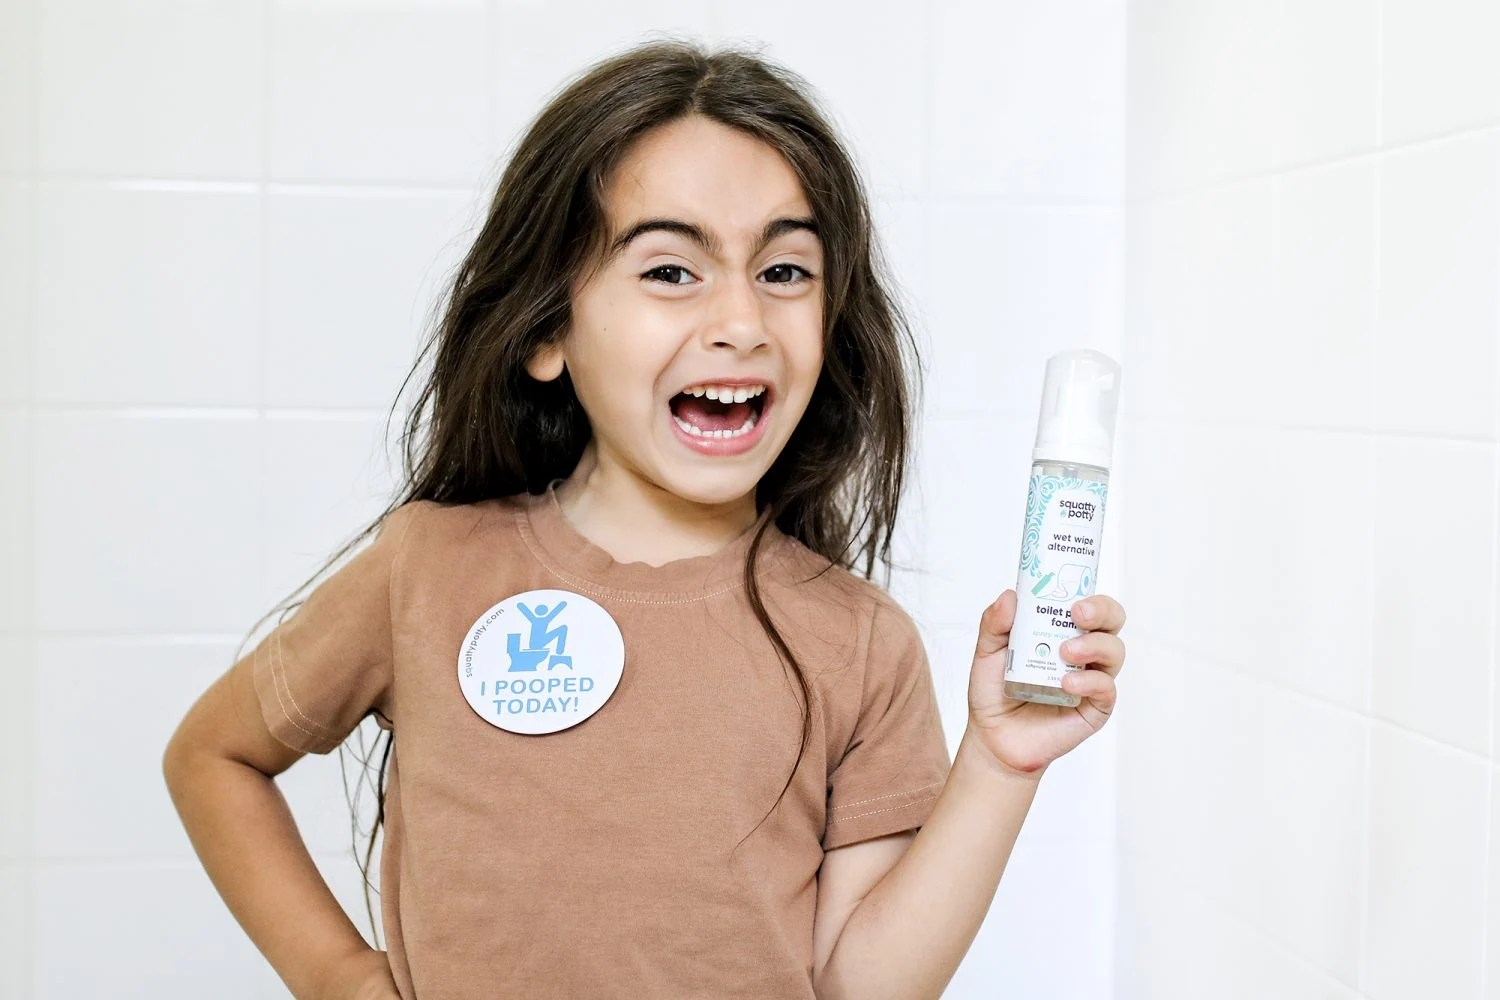 squatty potty, toilet paper foam, dump wet wipes, mommy blog, mom blogger, family blog, family influencer, instagram, mother, father, tween blog, dad blog, United States, 2018, mom blog, top, best, mommy blogger, daddy blog, tween blogger, child brand influencer, the super mom life, dad blog, dad blogger